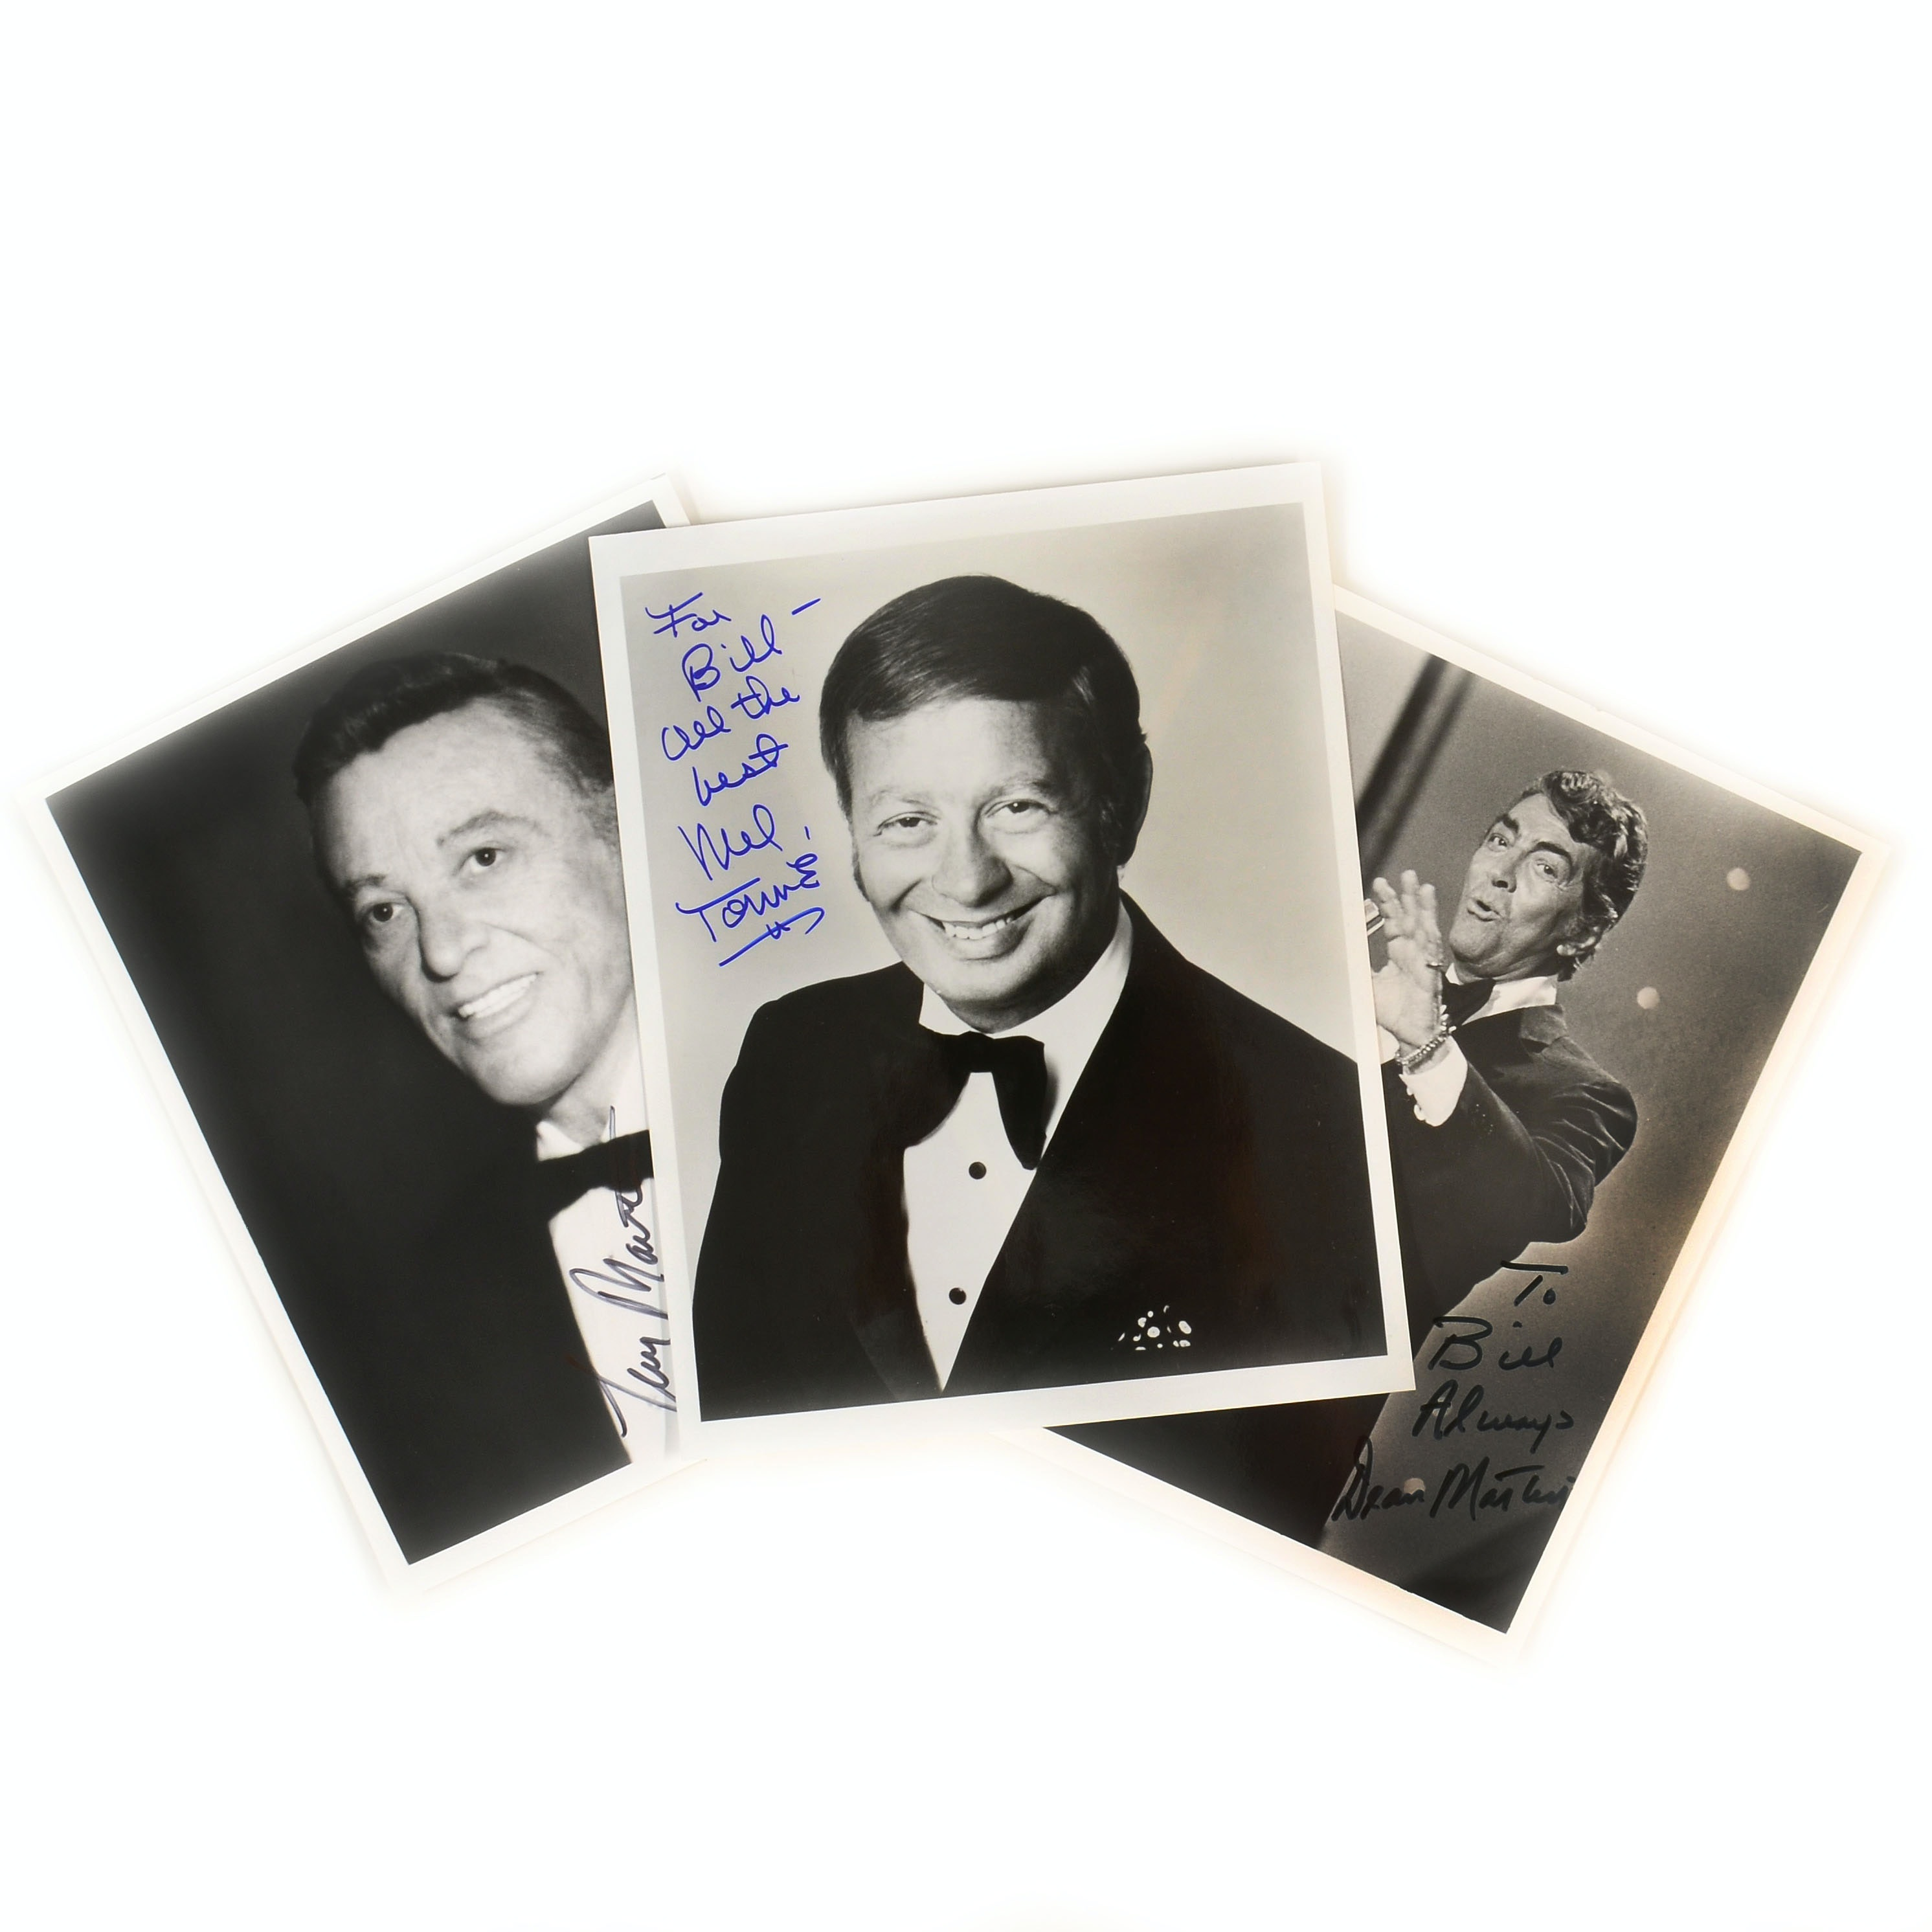 Dean Martin, Mel Torme, and Tony Martin Signed Photos